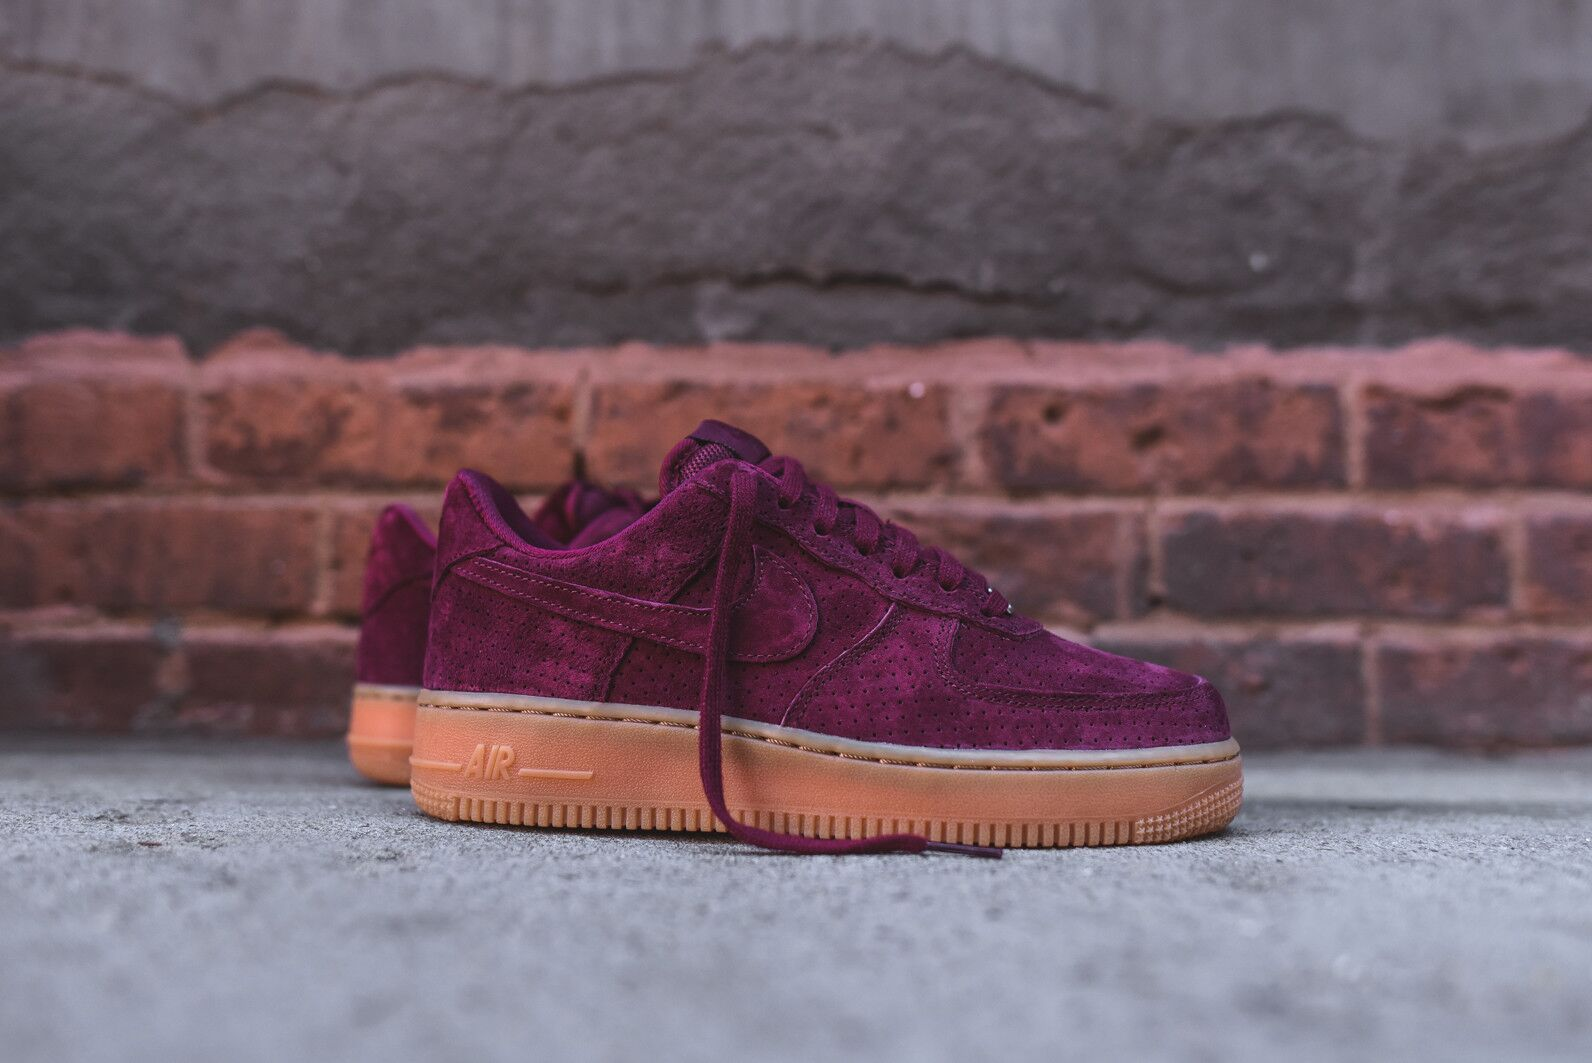 regarder 8b4ef 3bb25 NIKE AIR FORCE 1 07 SUEDE DEEP GARNET GUM BOTTOM 749263 600 ...